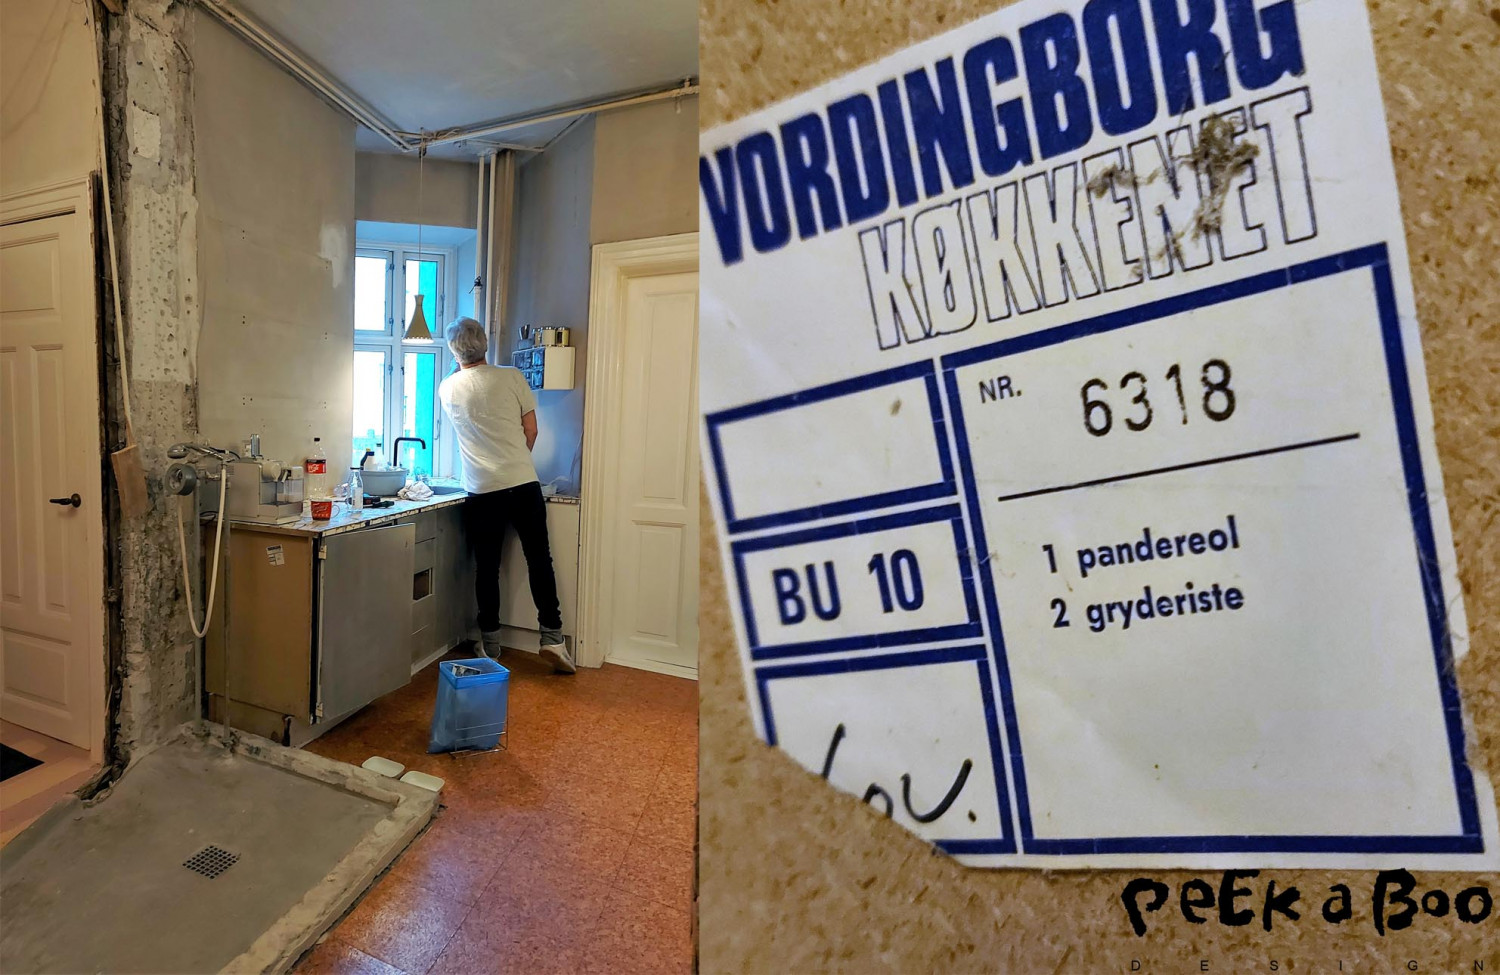 Here you can see a bit of the kitchen before after the walls were torn down and before the cabinets were removed. This was a classic Vordingborg kitchen.